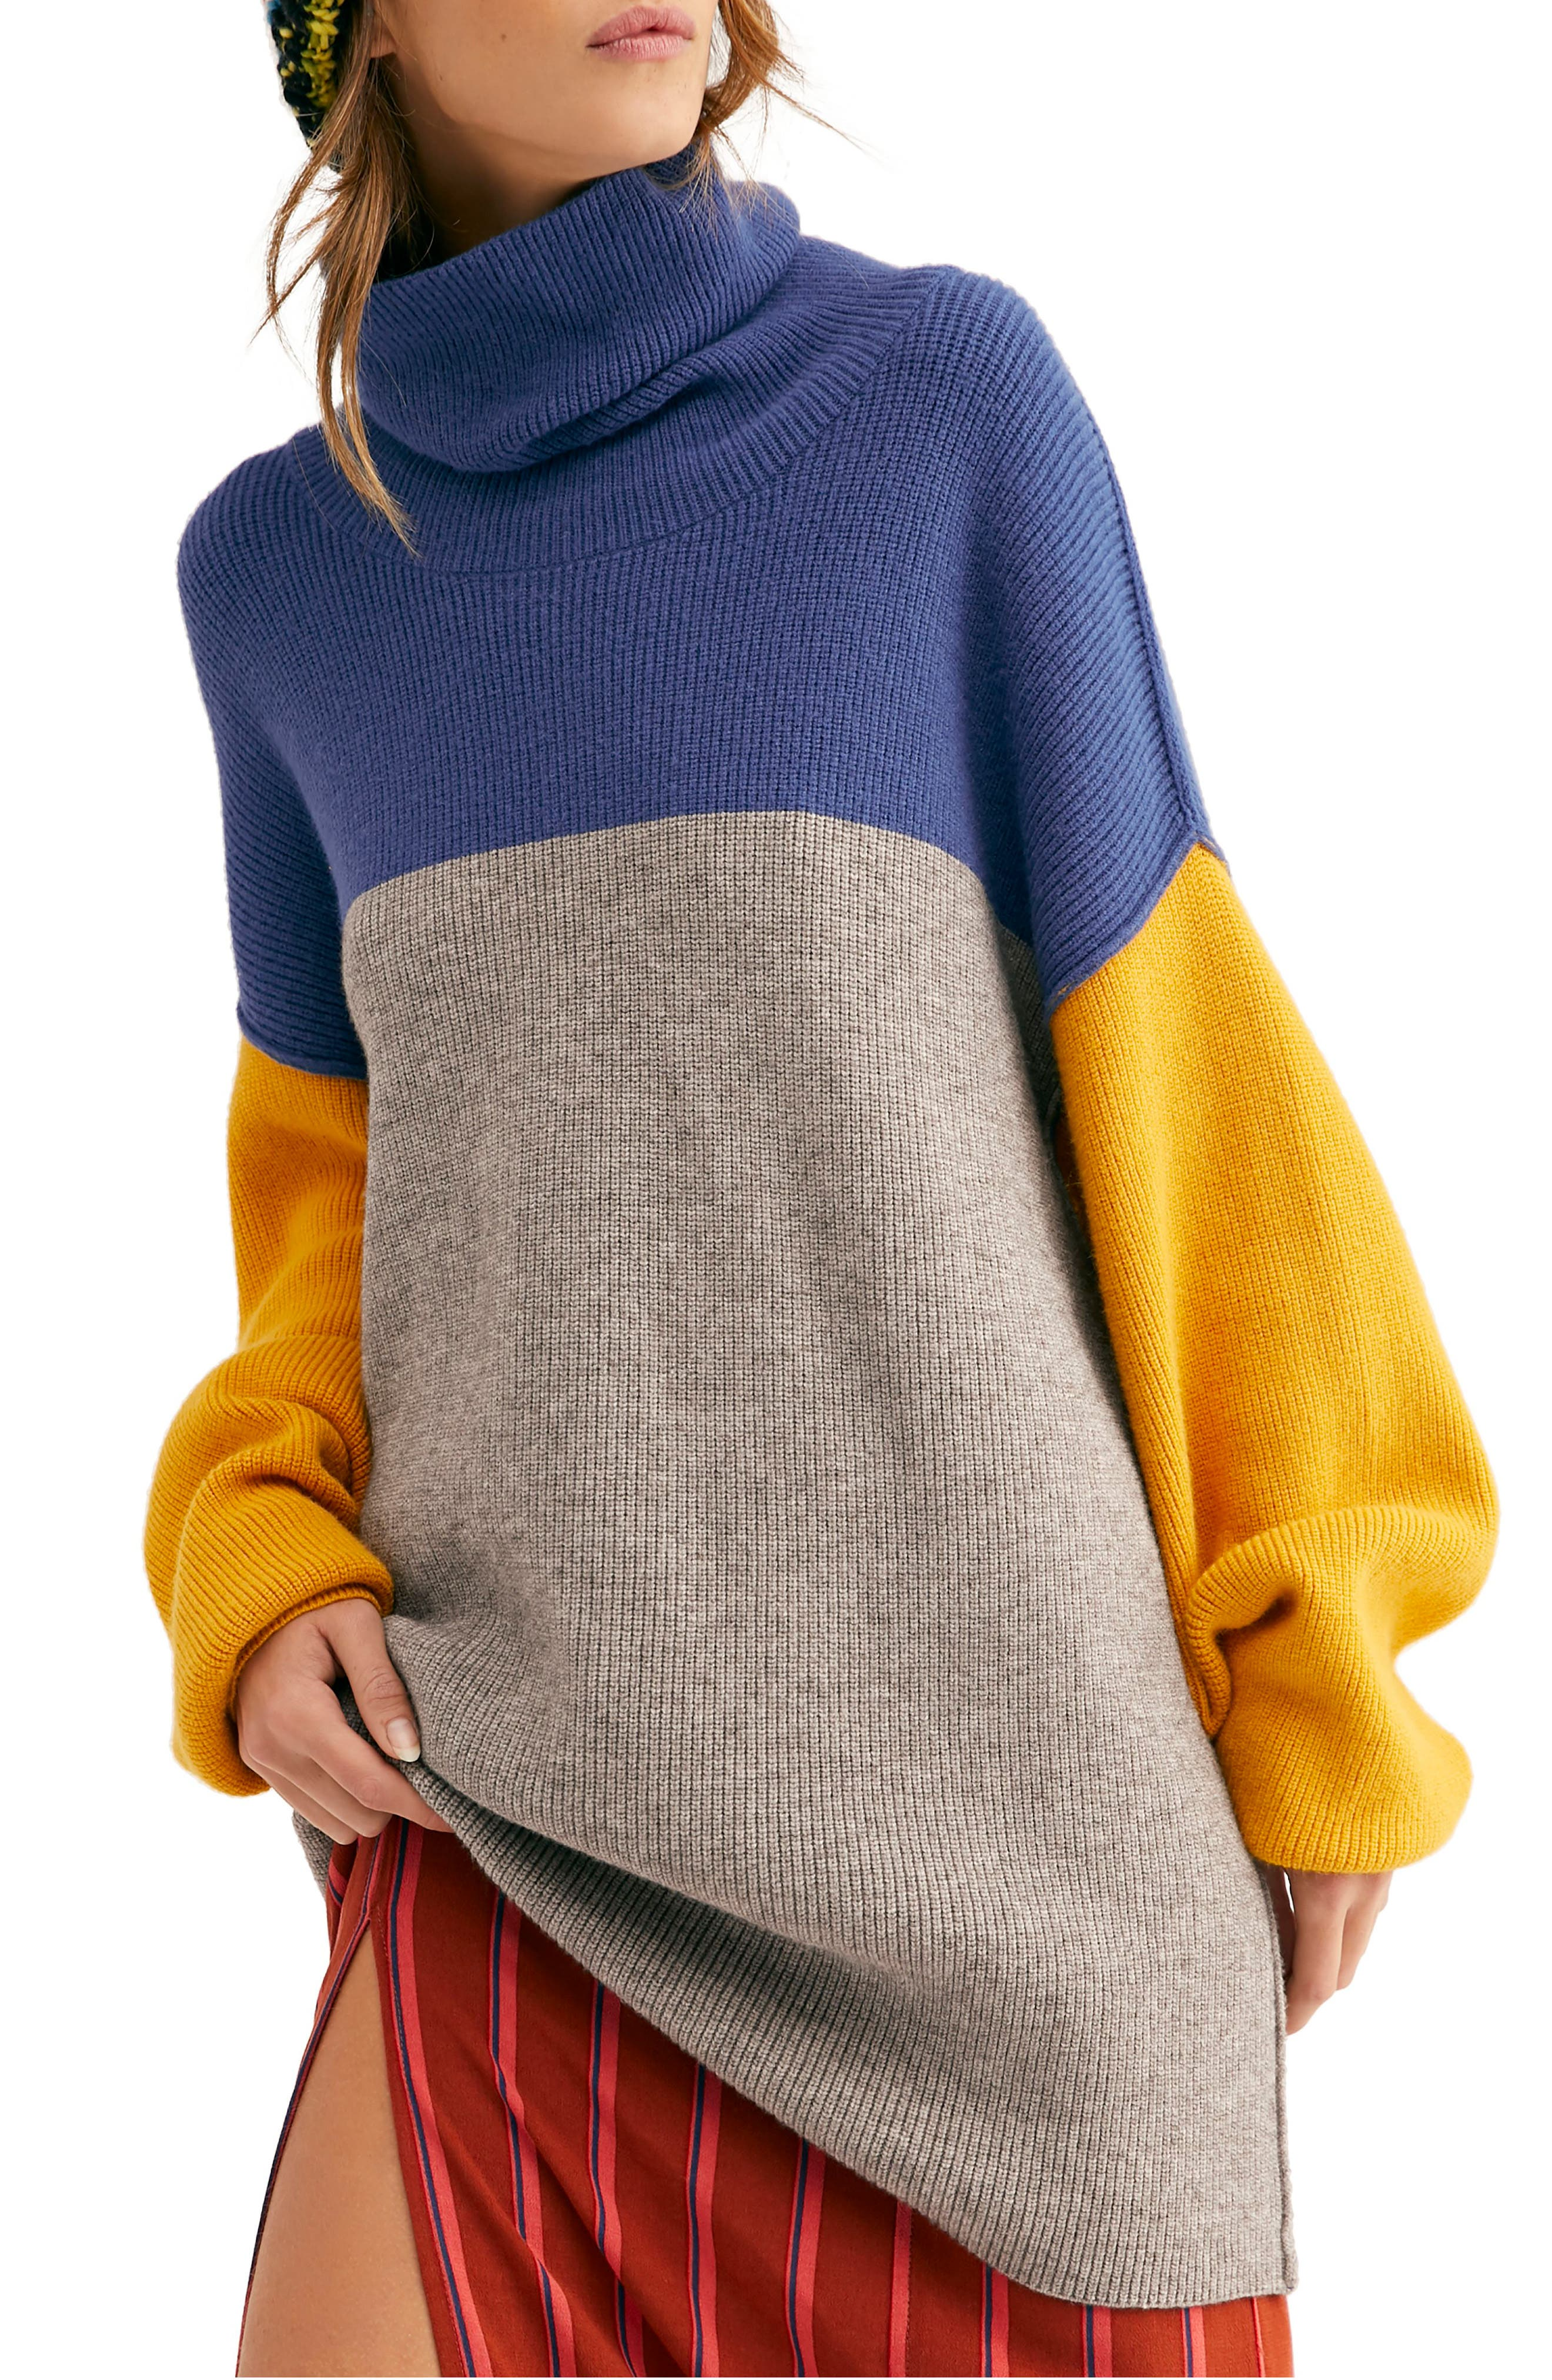 FREE PEOPLE, Colorblock Turtleneck Sweater, Main thumbnail 1, color, 400